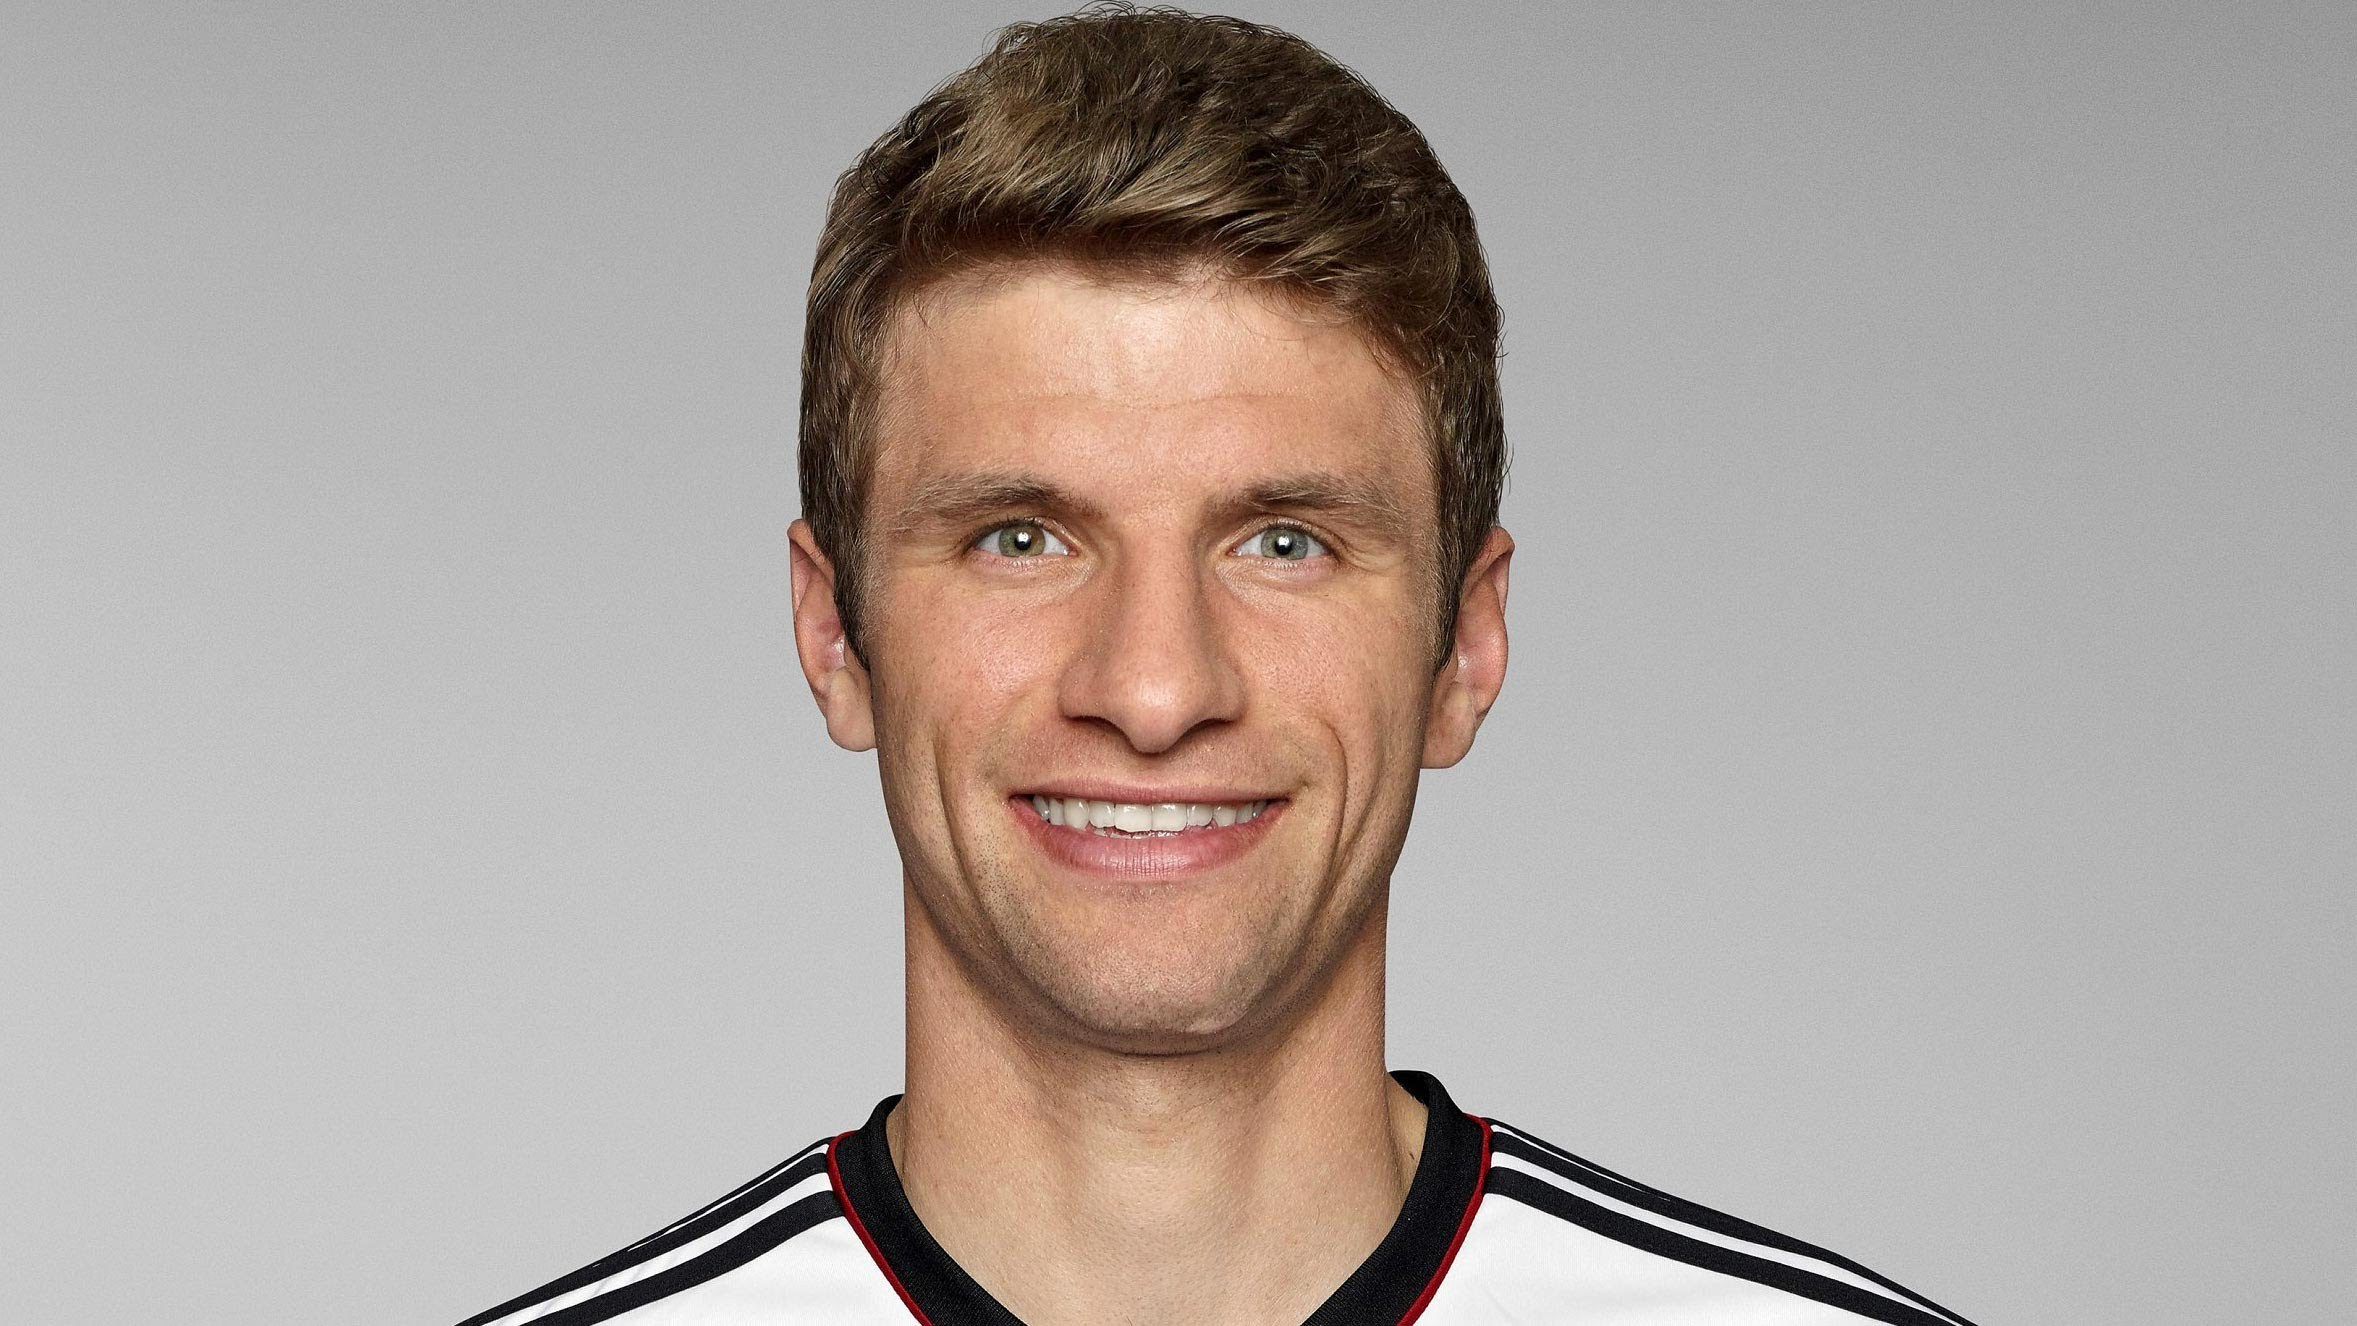 Thomas Muller Wallpapers Images Photos Pictures Backgrounds